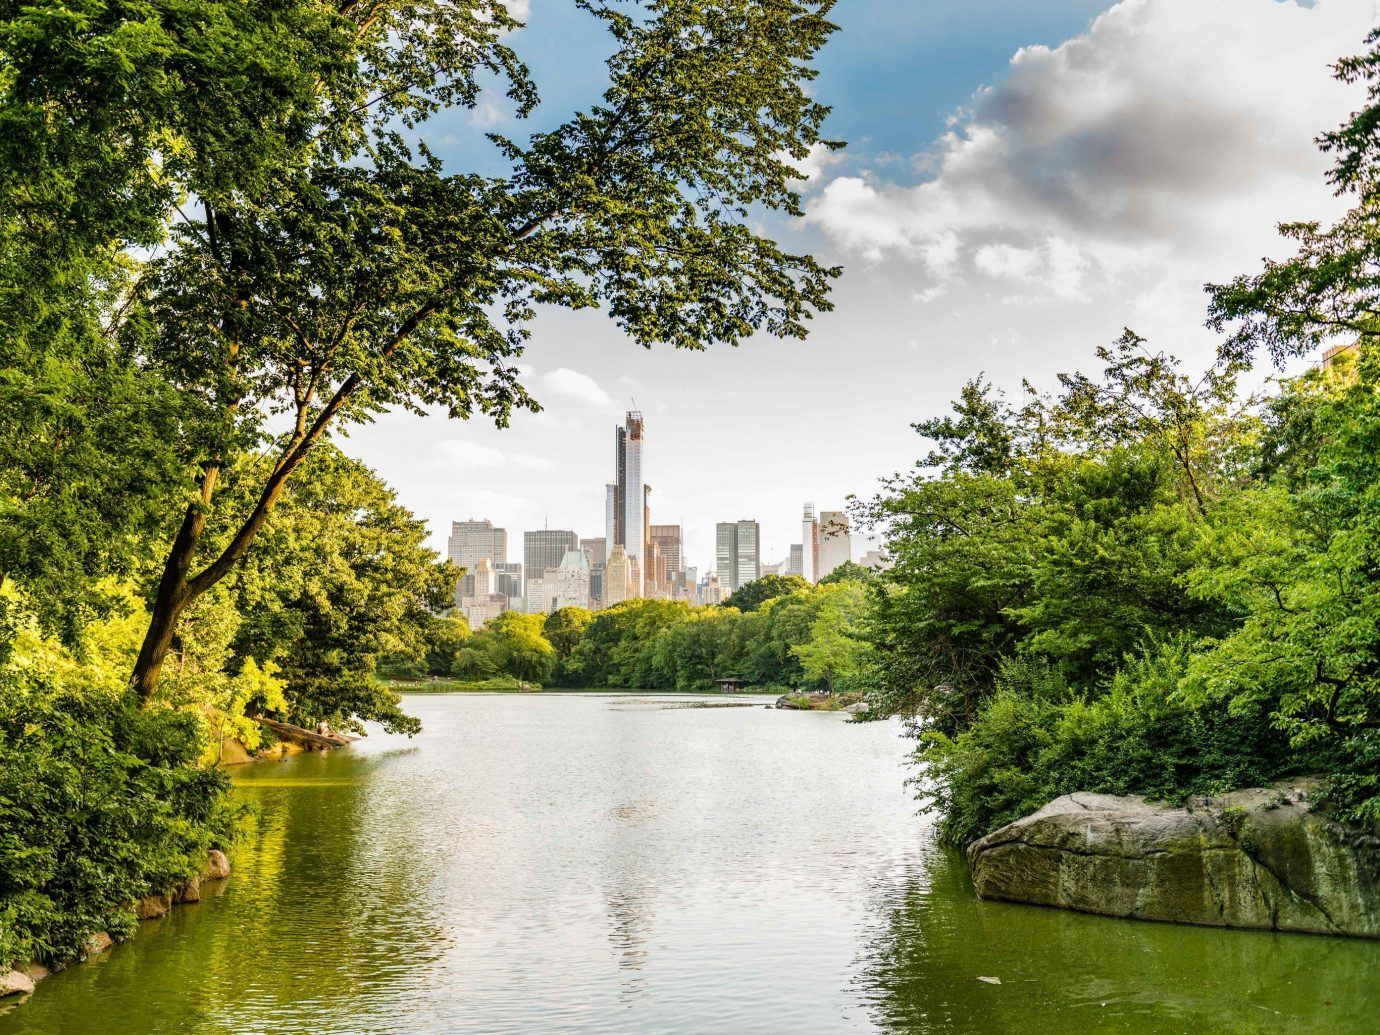 Arts + Culture Brooklyn Canada Hawaii Los Angeles Morocco New York Oahu Offbeat Scotland Toronto waterway water Nature reflection green body of water leaf tree sky River Canal bank daytime watercourse pond plant bayou Lake City grass landscape water resources reservoir park skyline